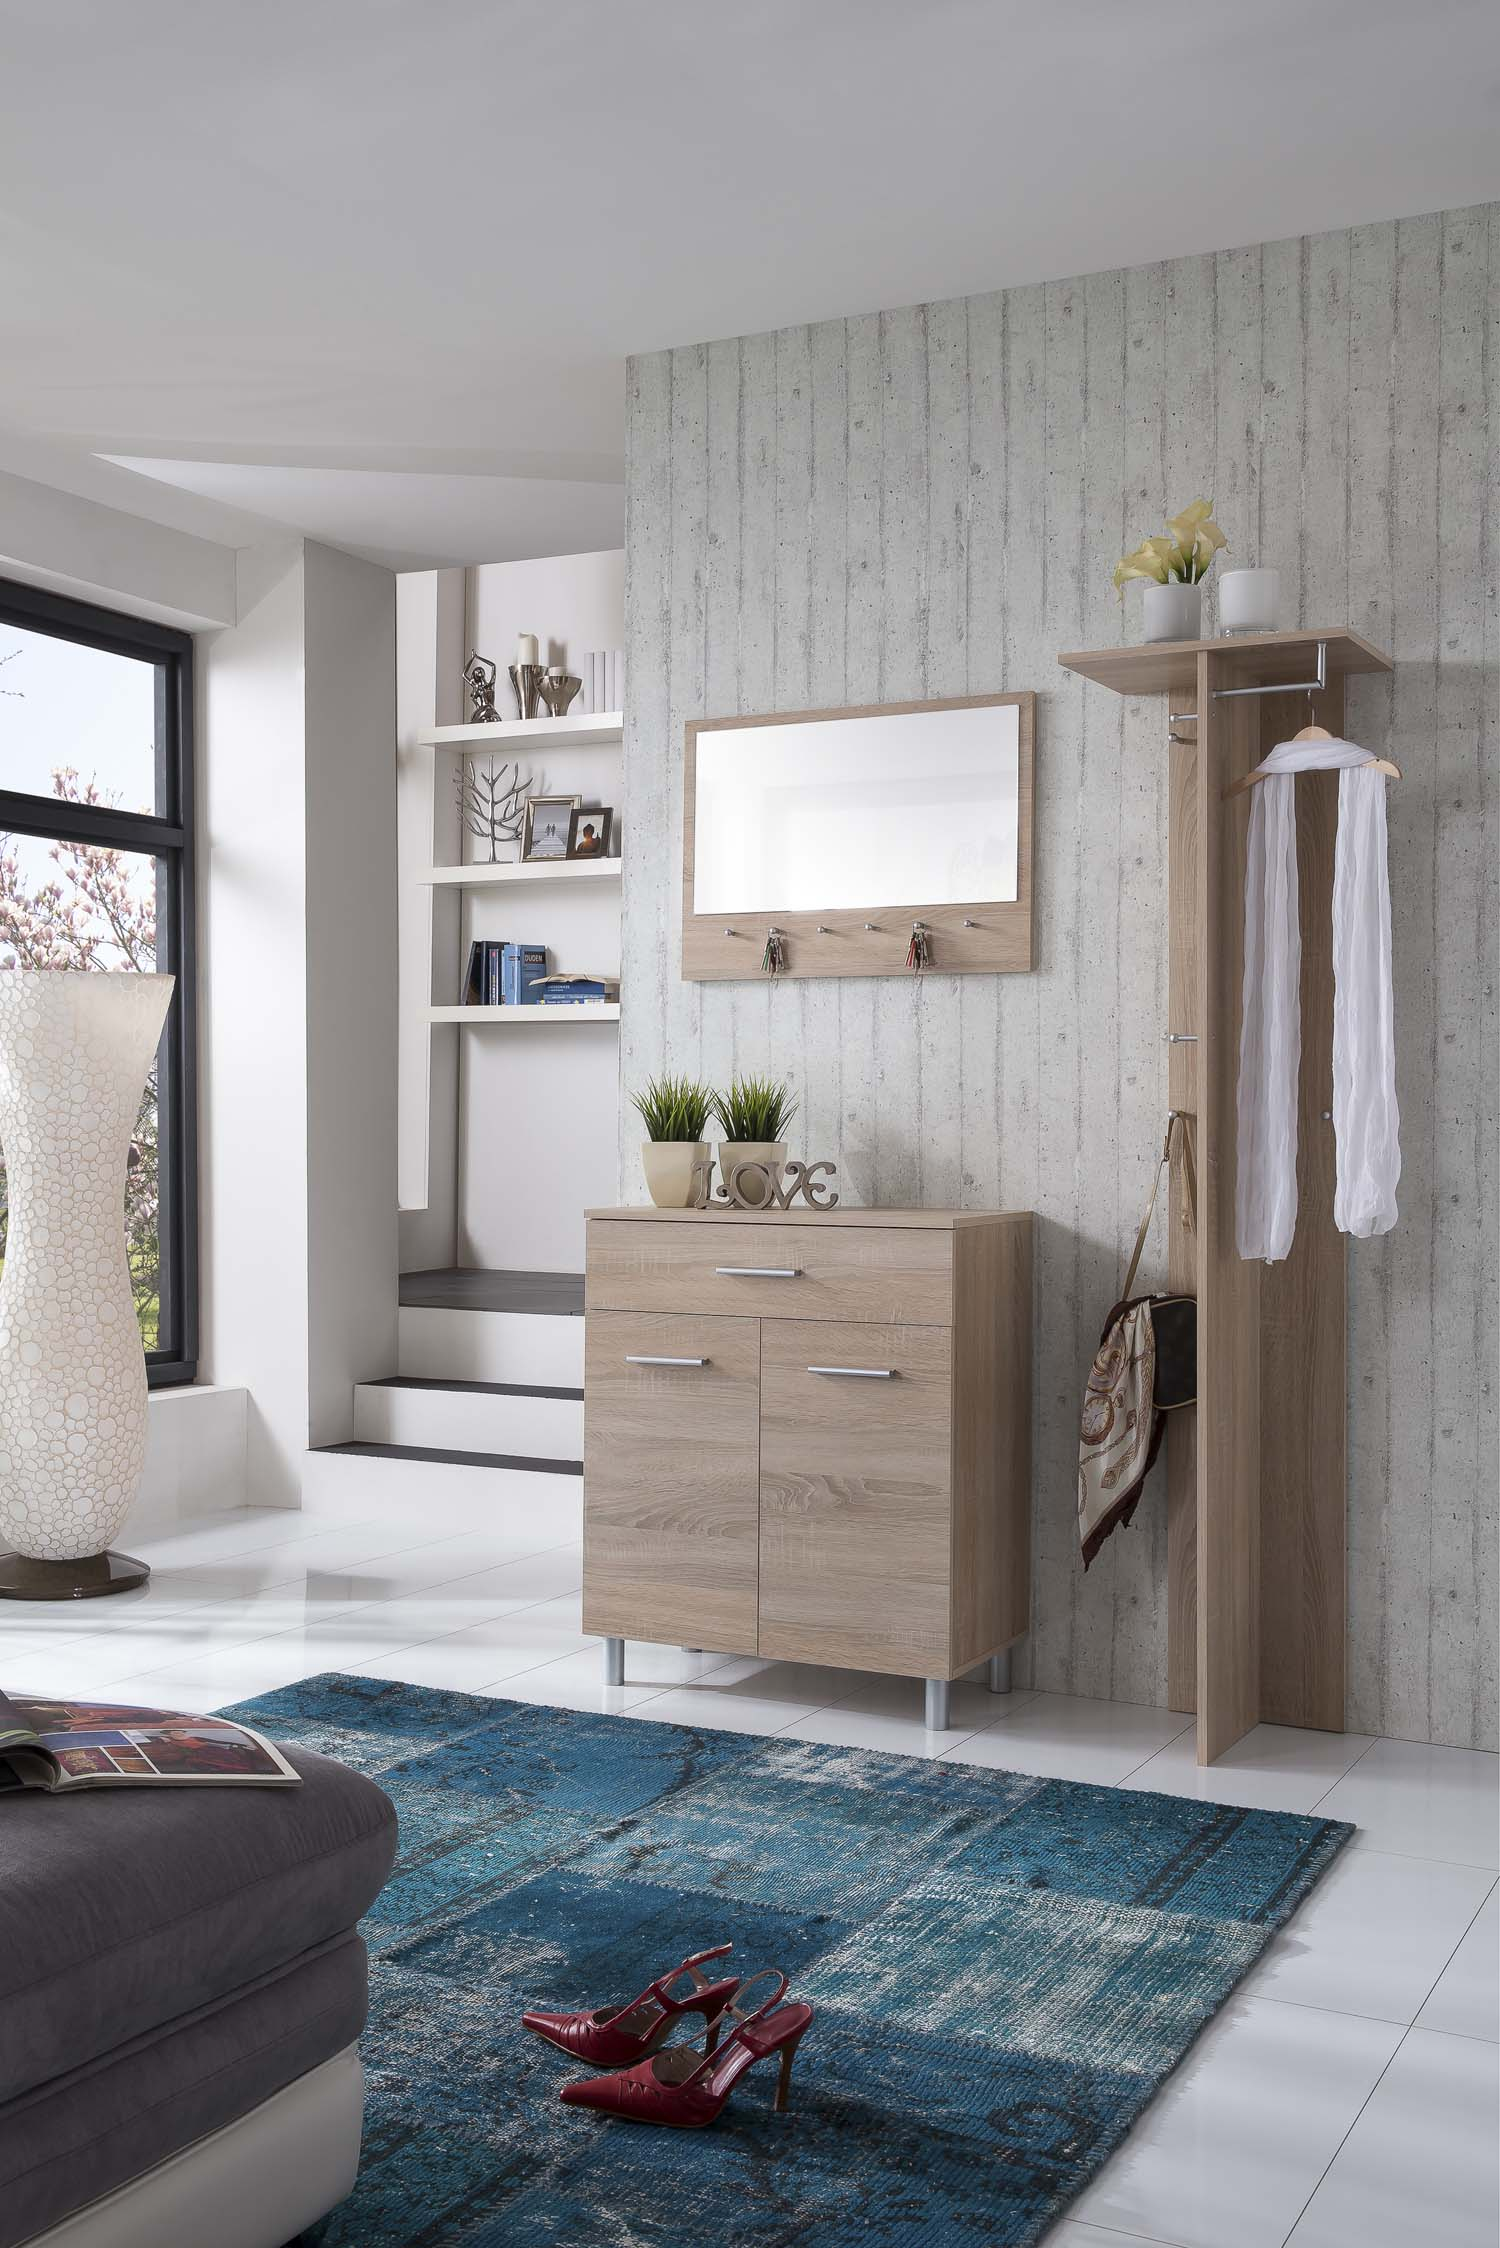 schuhschrank garderobe wandspiegel flurset garderobenset. Black Bedroom Furniture Sets. Home Design Ideas